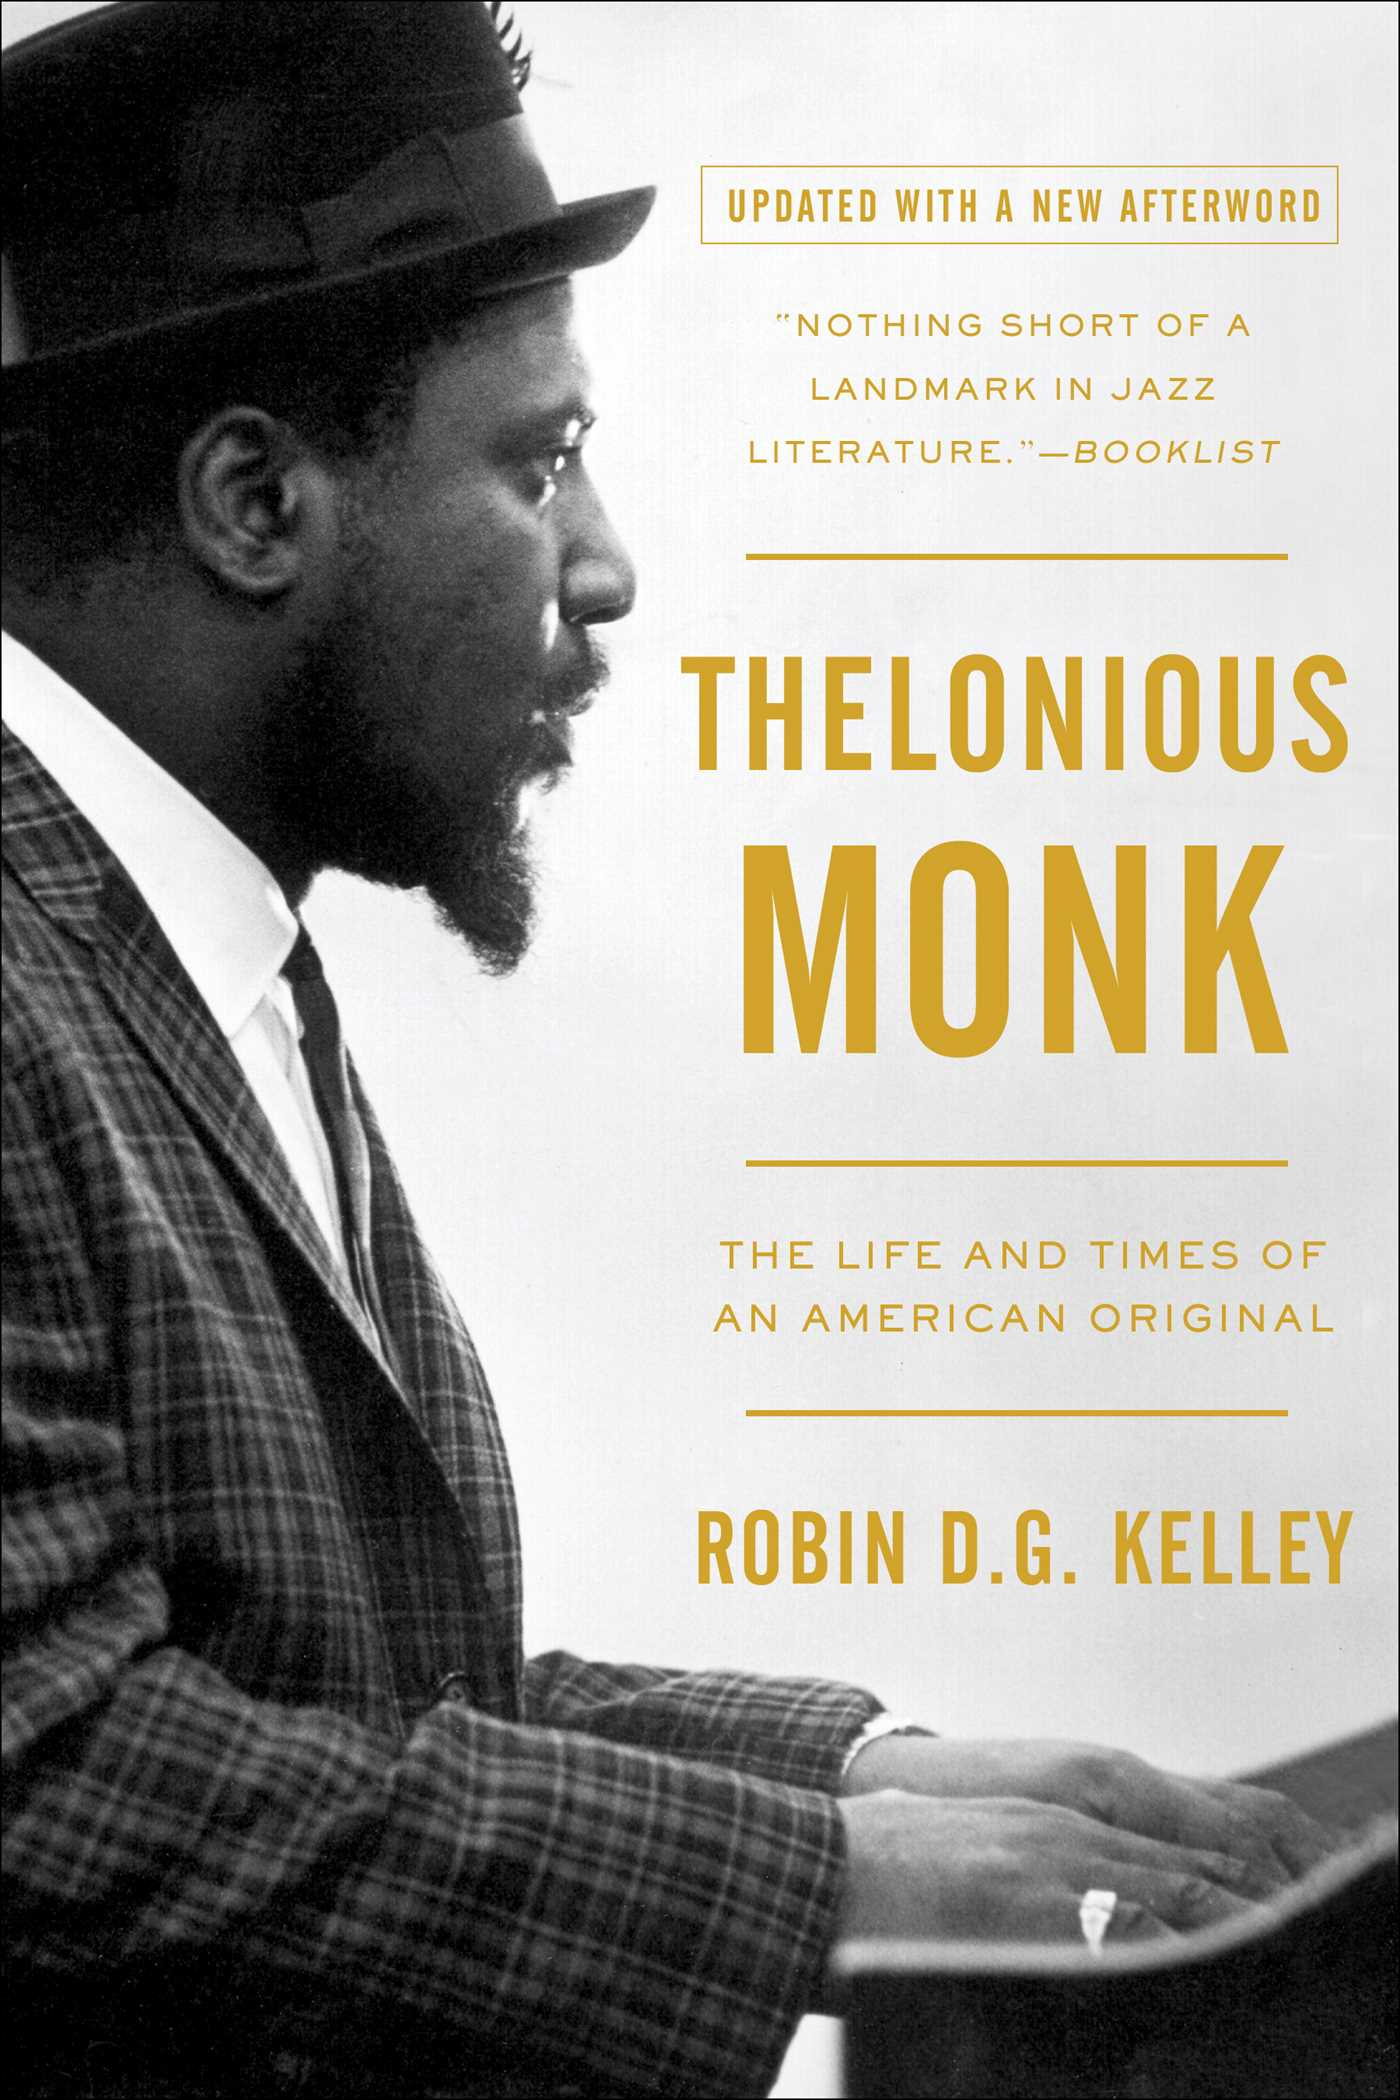 a biography of the life and jazz music career of thelonious monk Thelonious monk is credited as jazz pianist, composer, considered one of the giants of american music  thelonious sphere monk was an american jazz pianist and composer considered one of the giants of american music monk had a unique improvisational style.